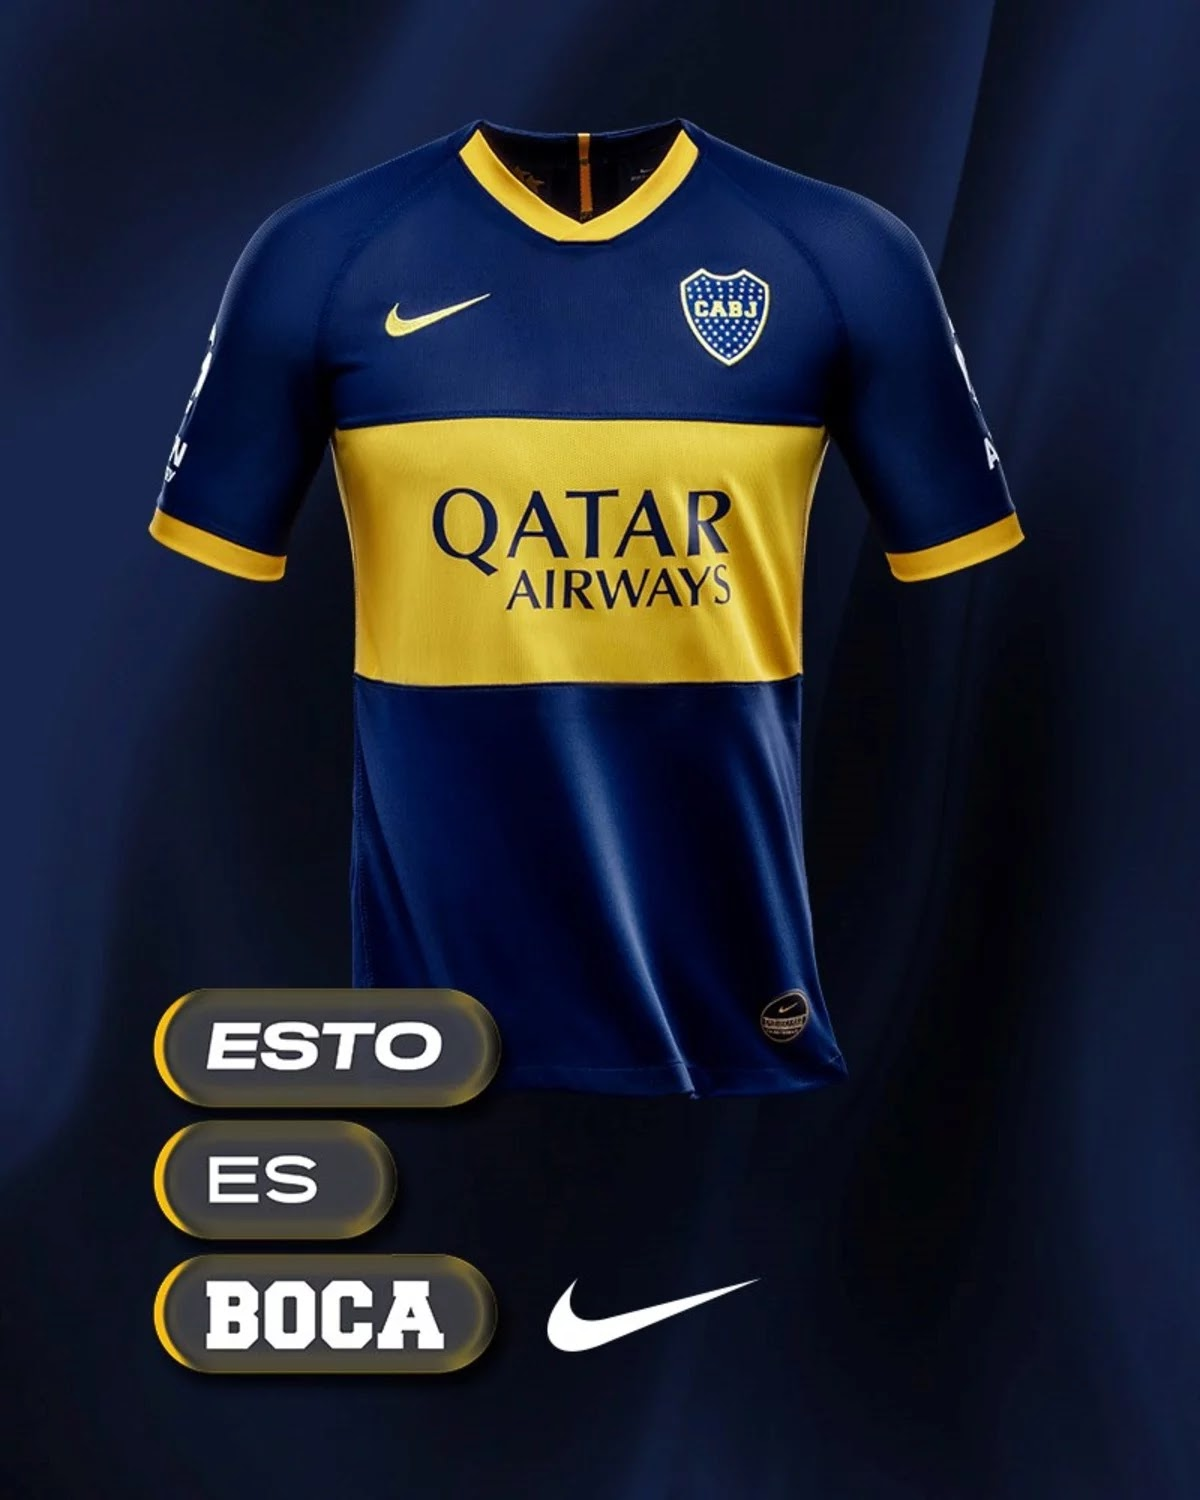 No More Nike After 23 Years: Boca Juniors Signs Record